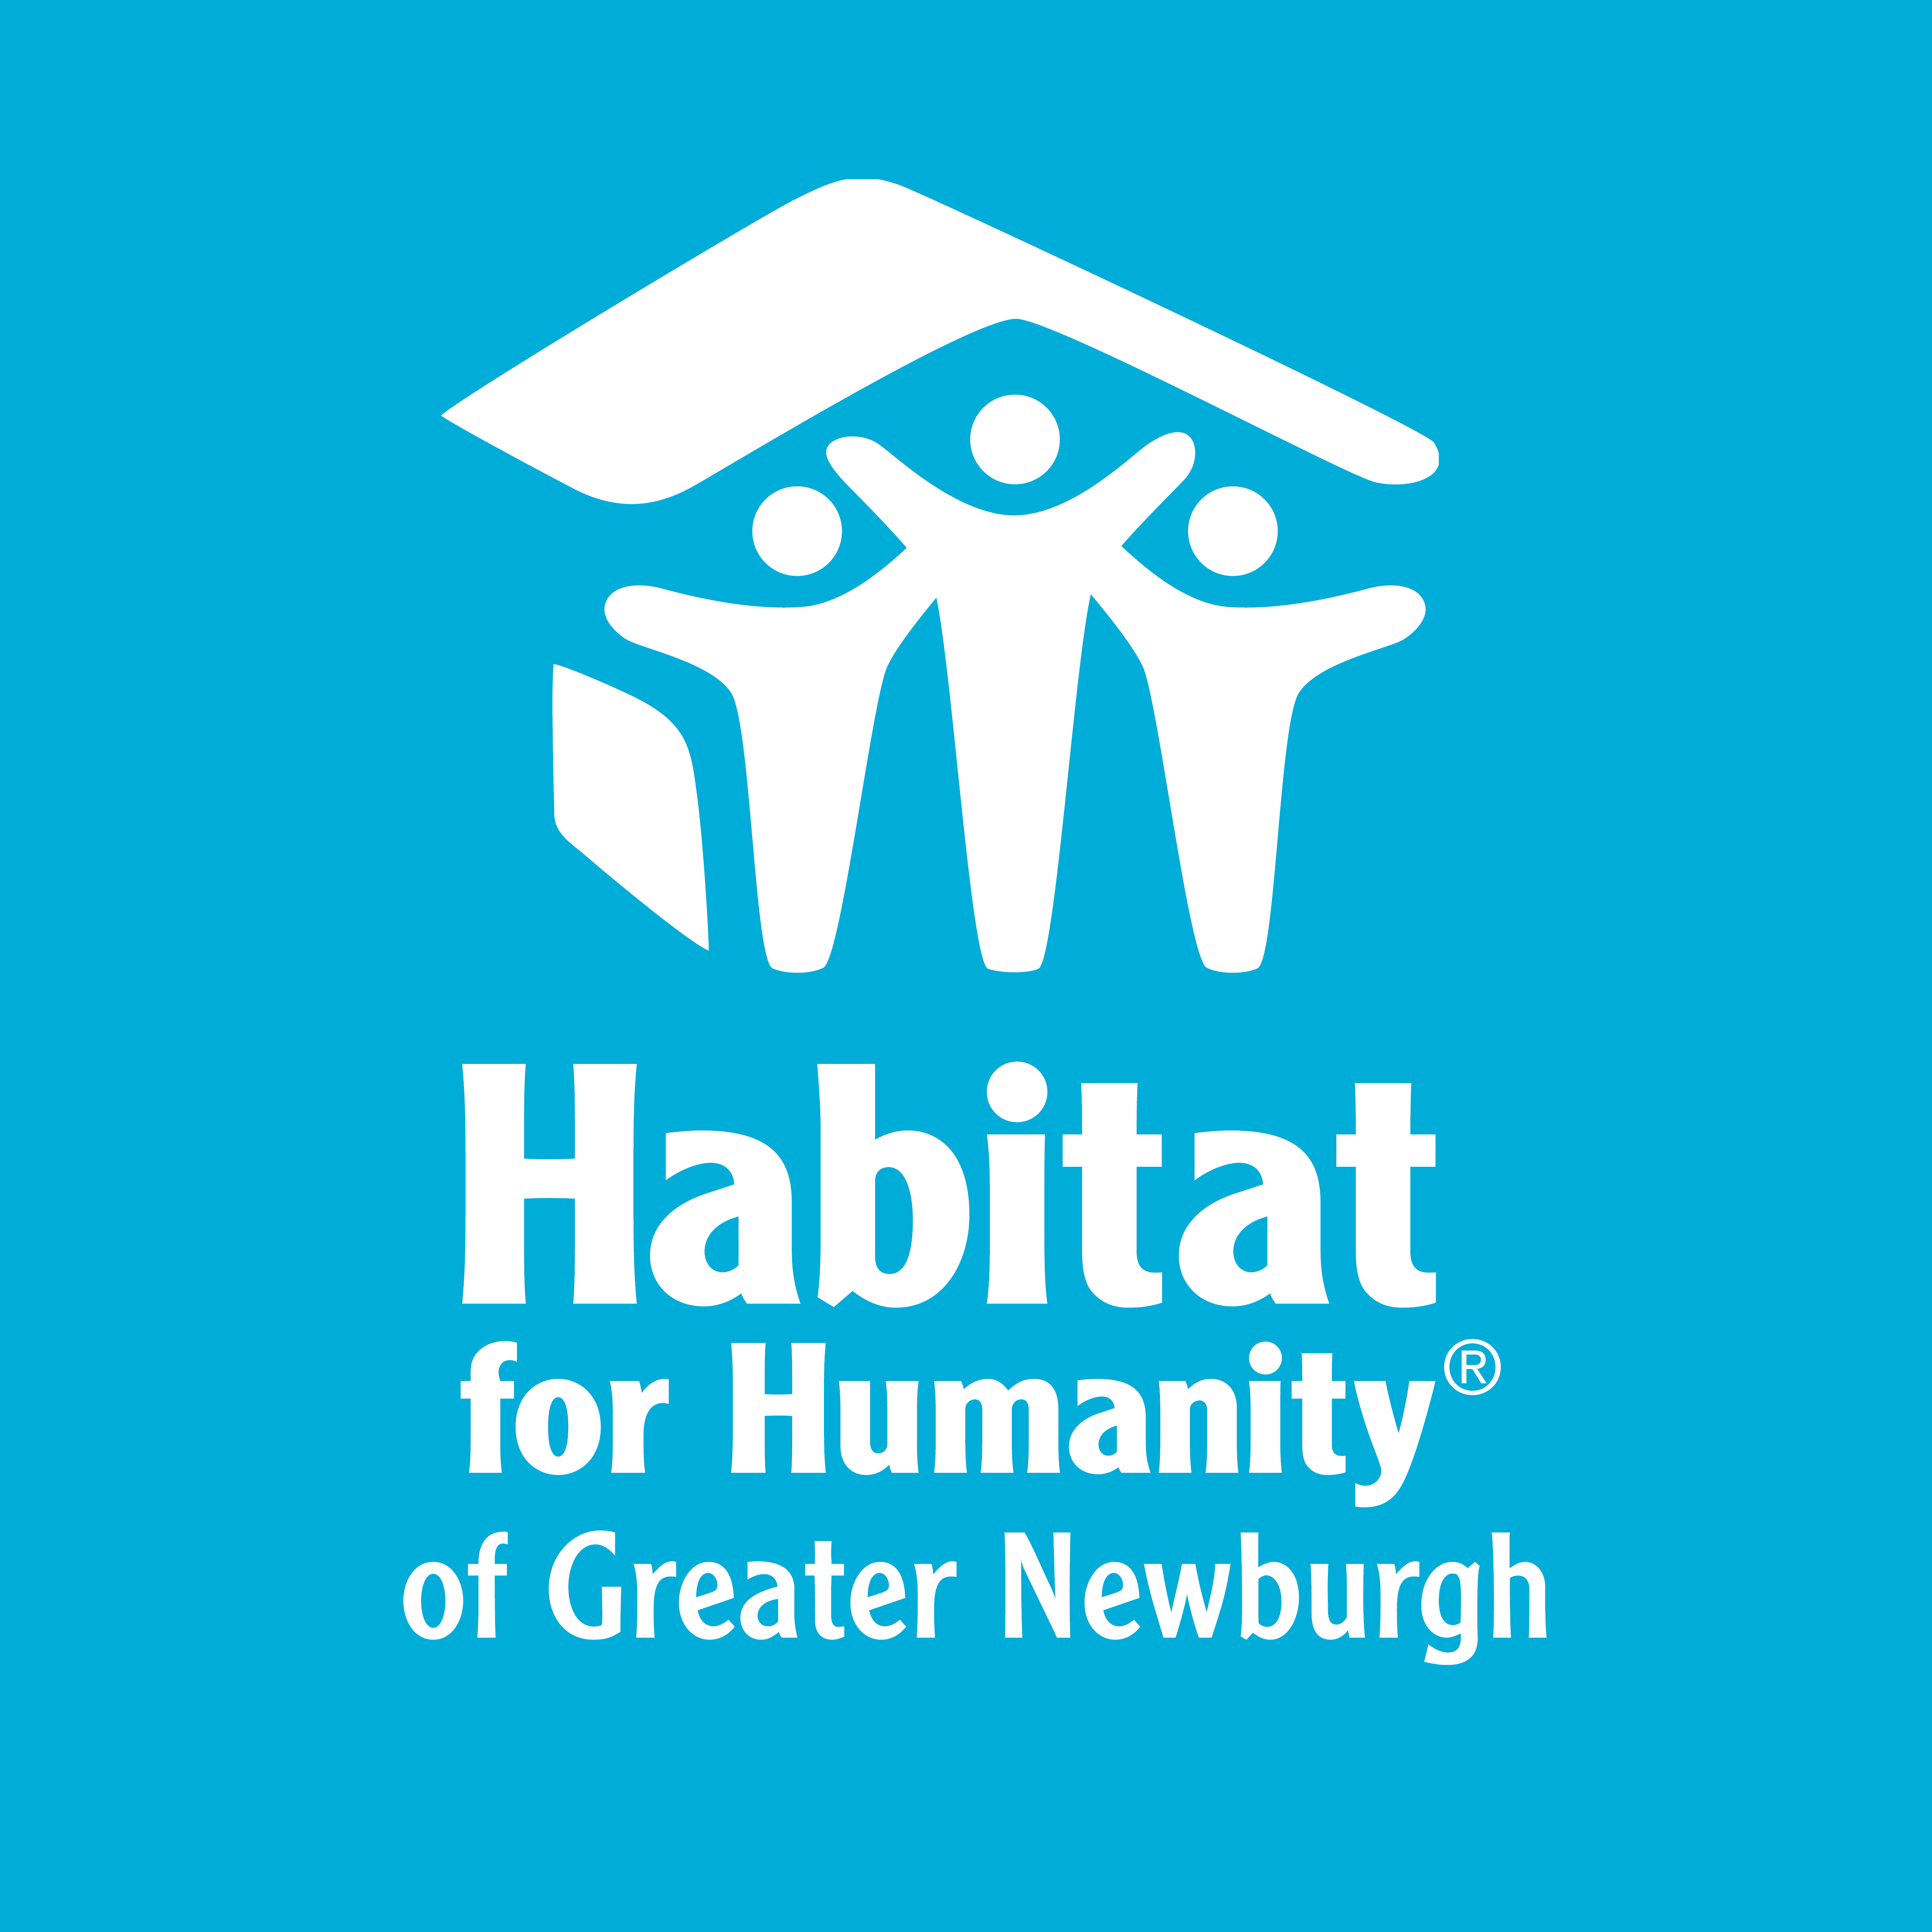 Habitat for Humanity of Greater Newburgh